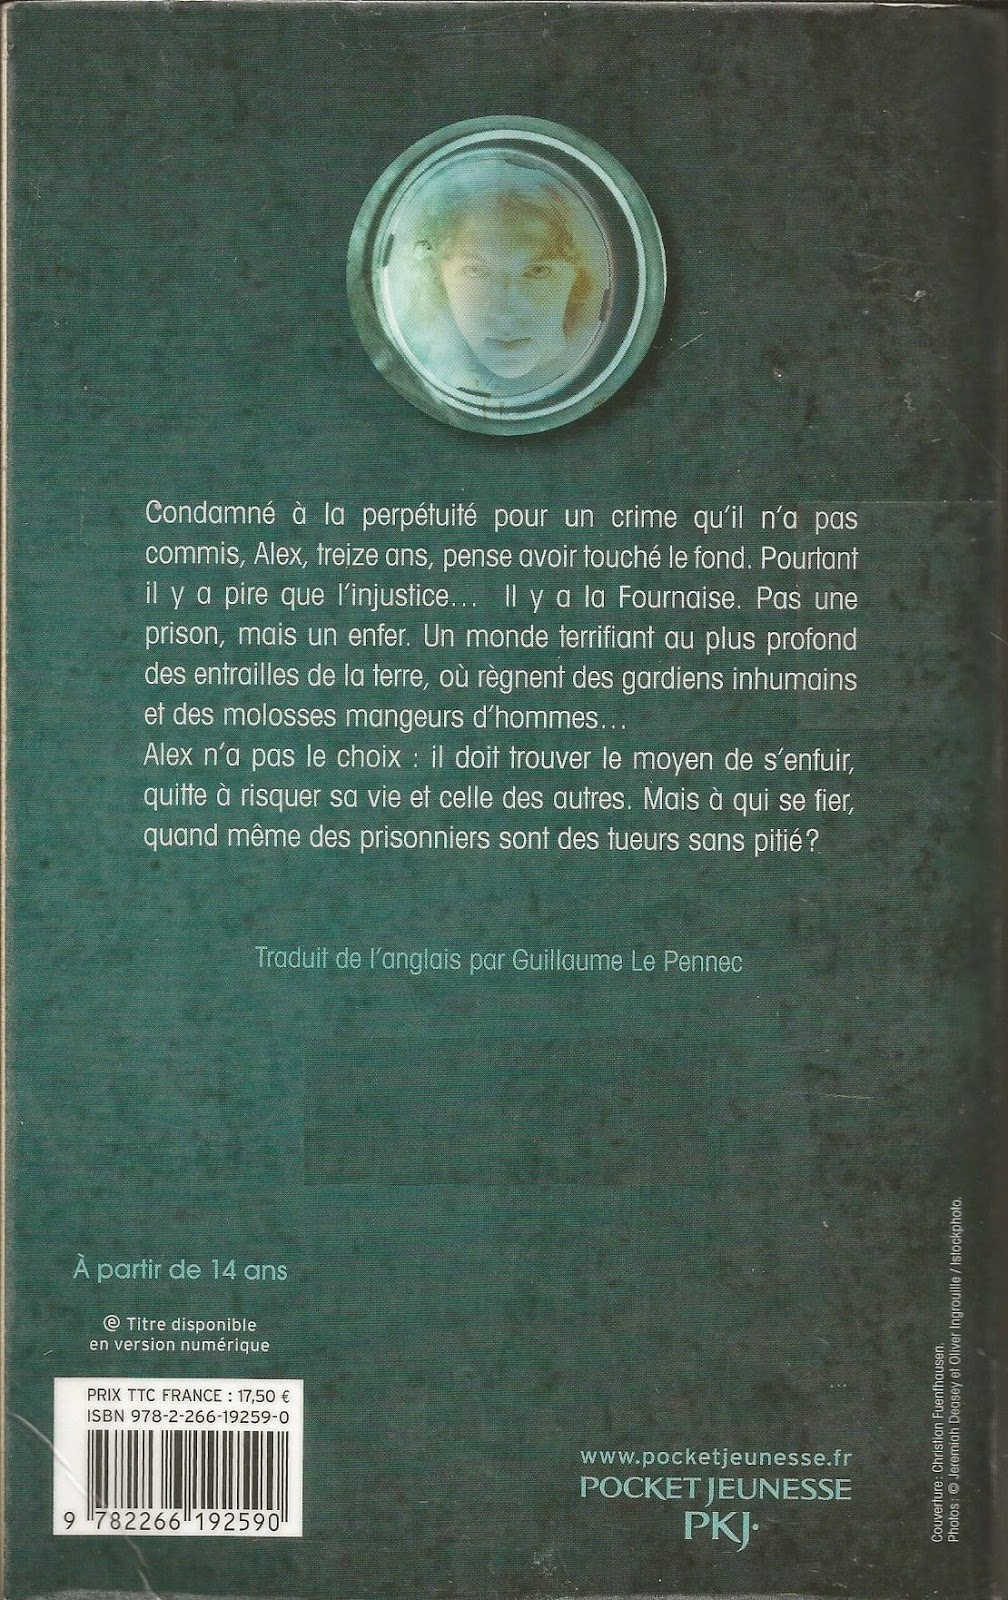 La Fournaise Alexander Gordon Smith back cover quatrième de couverture